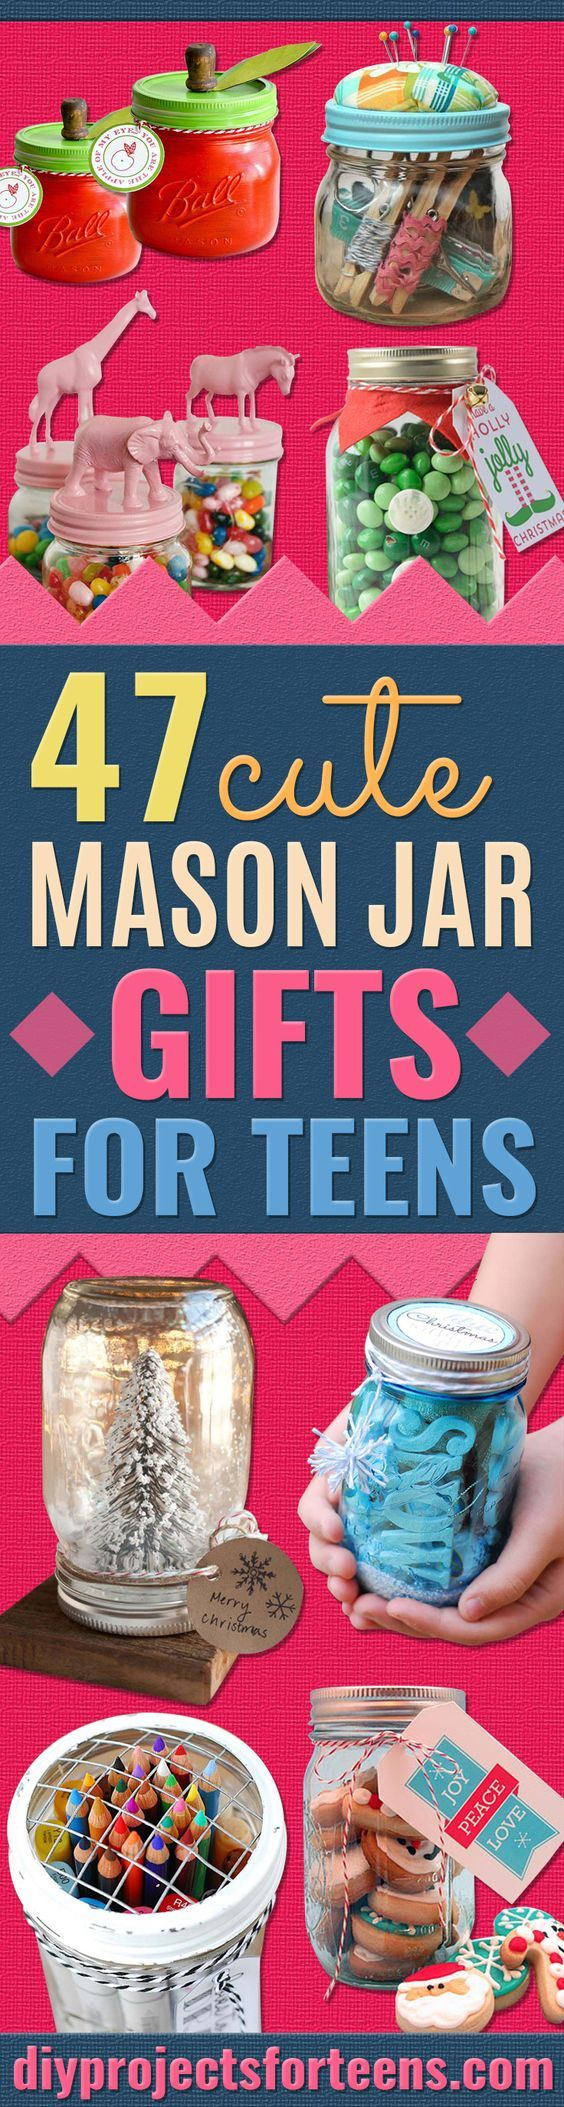 Cute DIY Mason Jar Gift Ideas for Teens - Best Christmas Presents, Birthday Gifts and Cool Room Decor Ideas for Girls and Boy Teenagers - Fun Crafts and DIY Projects for Snow Globes, Dollar Store Crafts and Valentines for Kids